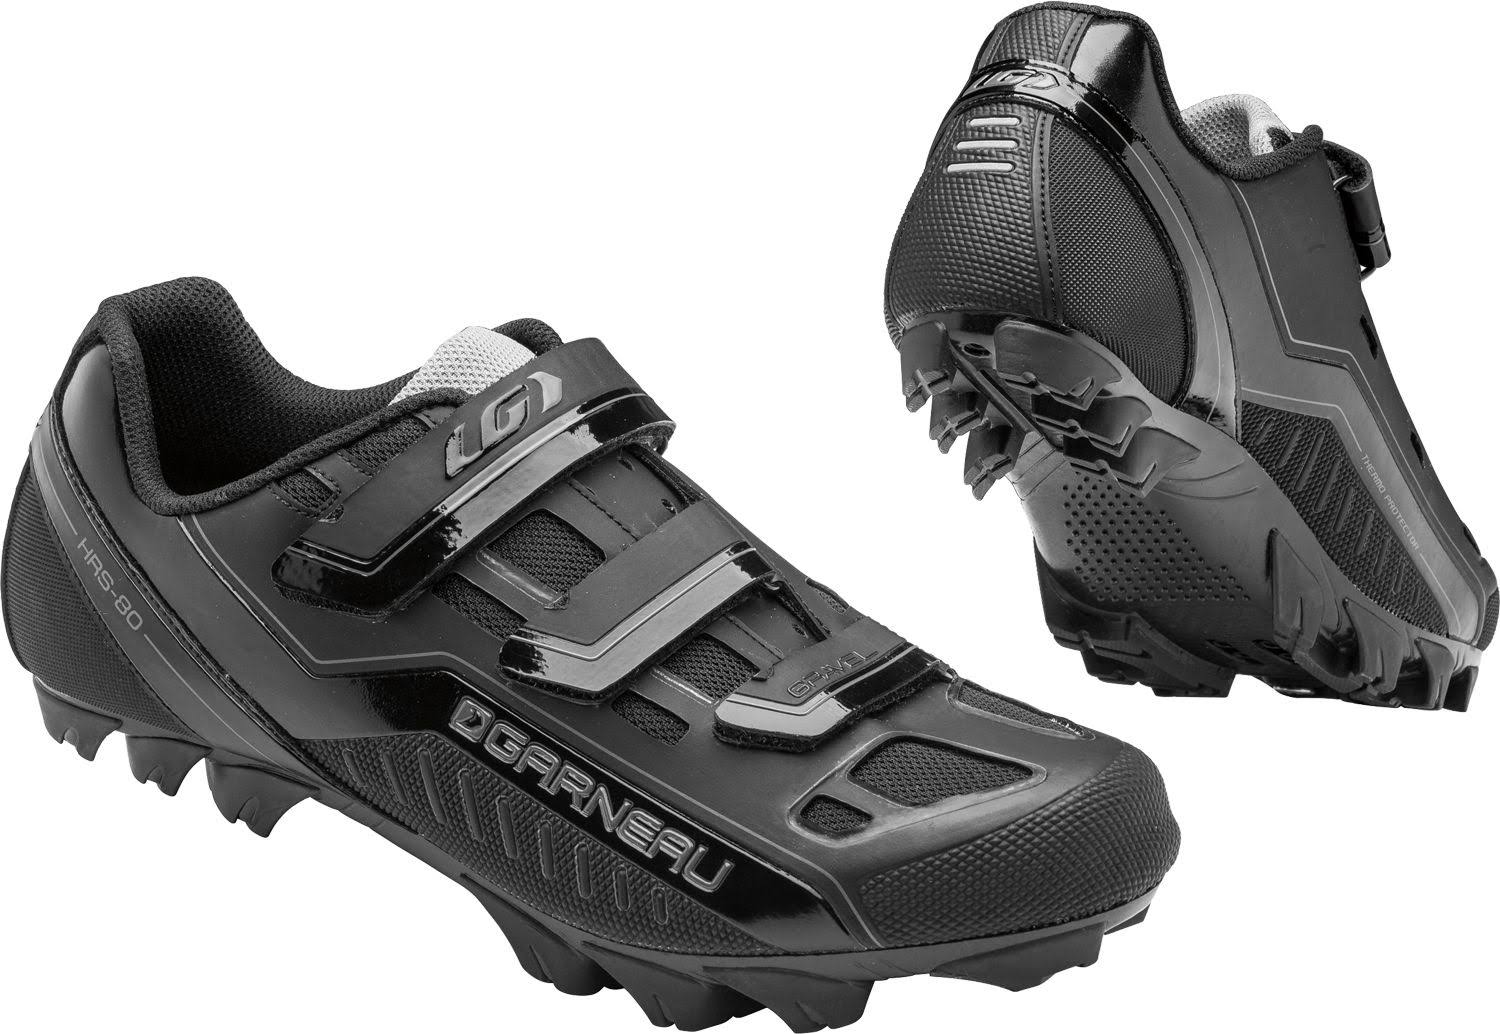 Louis Garneau Men's Gravel Cycling Shoes - Black, 41 EU